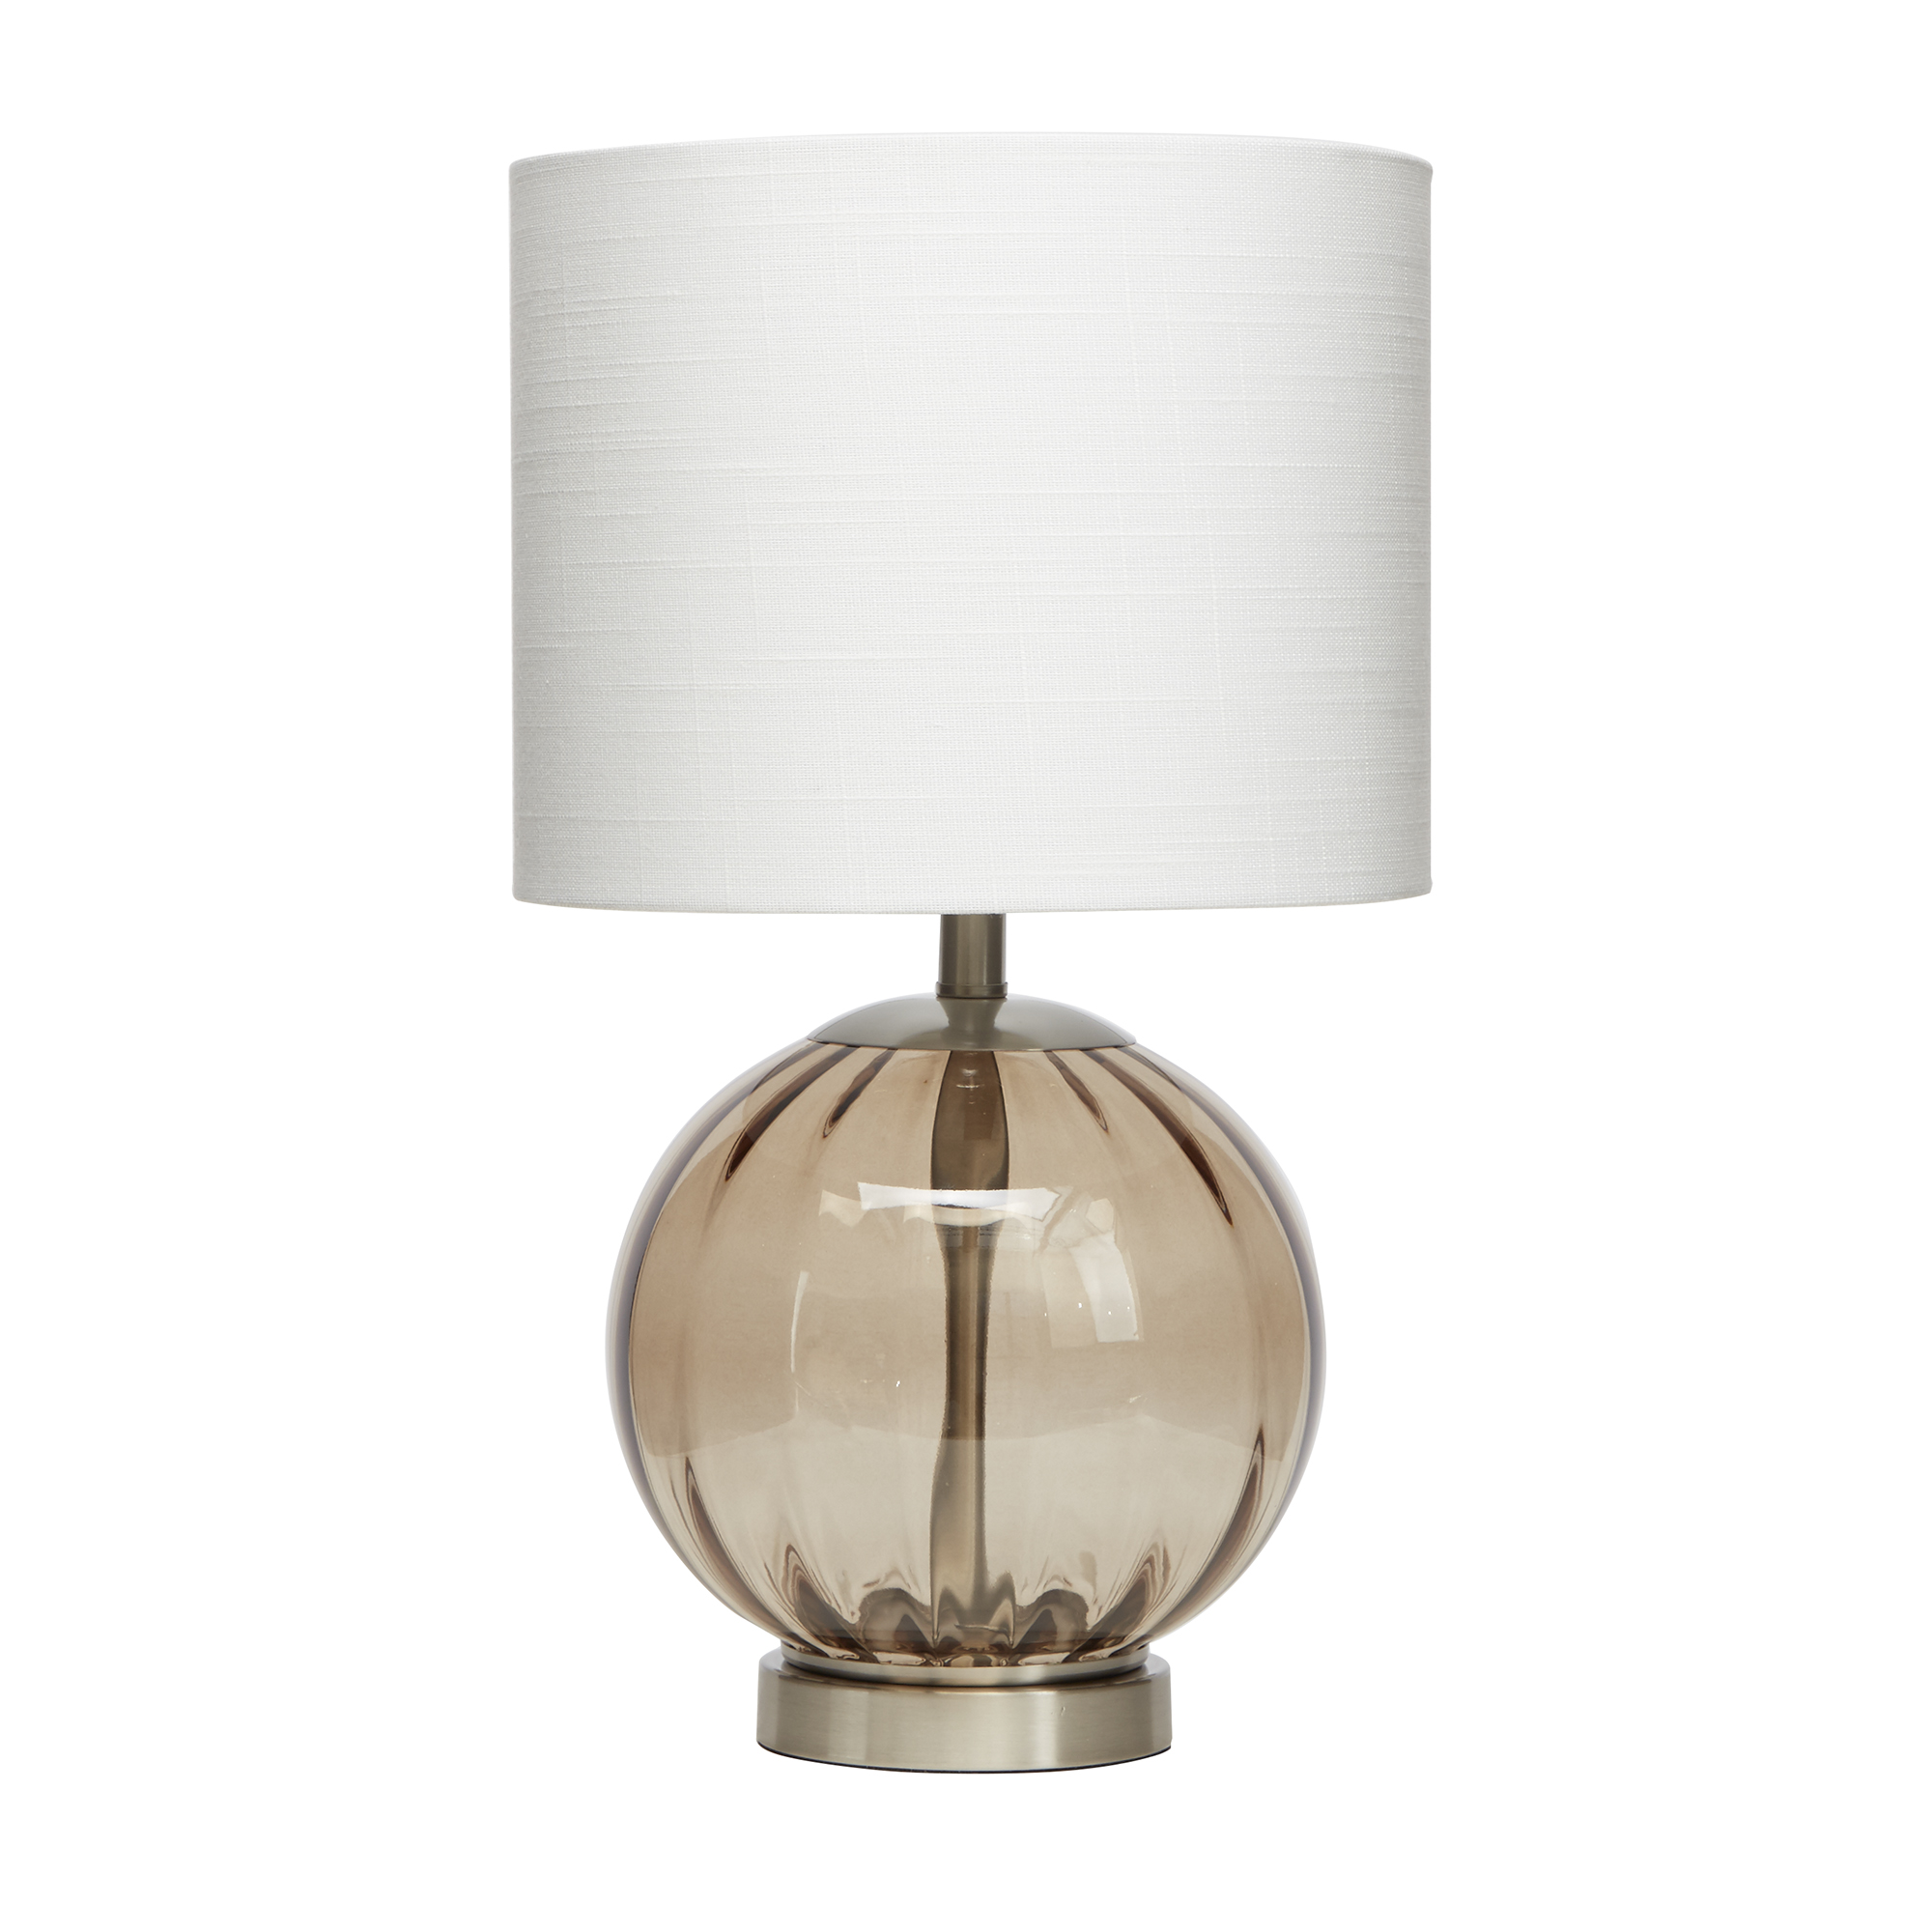 Table Lamp Base Better Homes Gardens Smoke Glass Sphere Table Lamp Brushed Nickel Finish